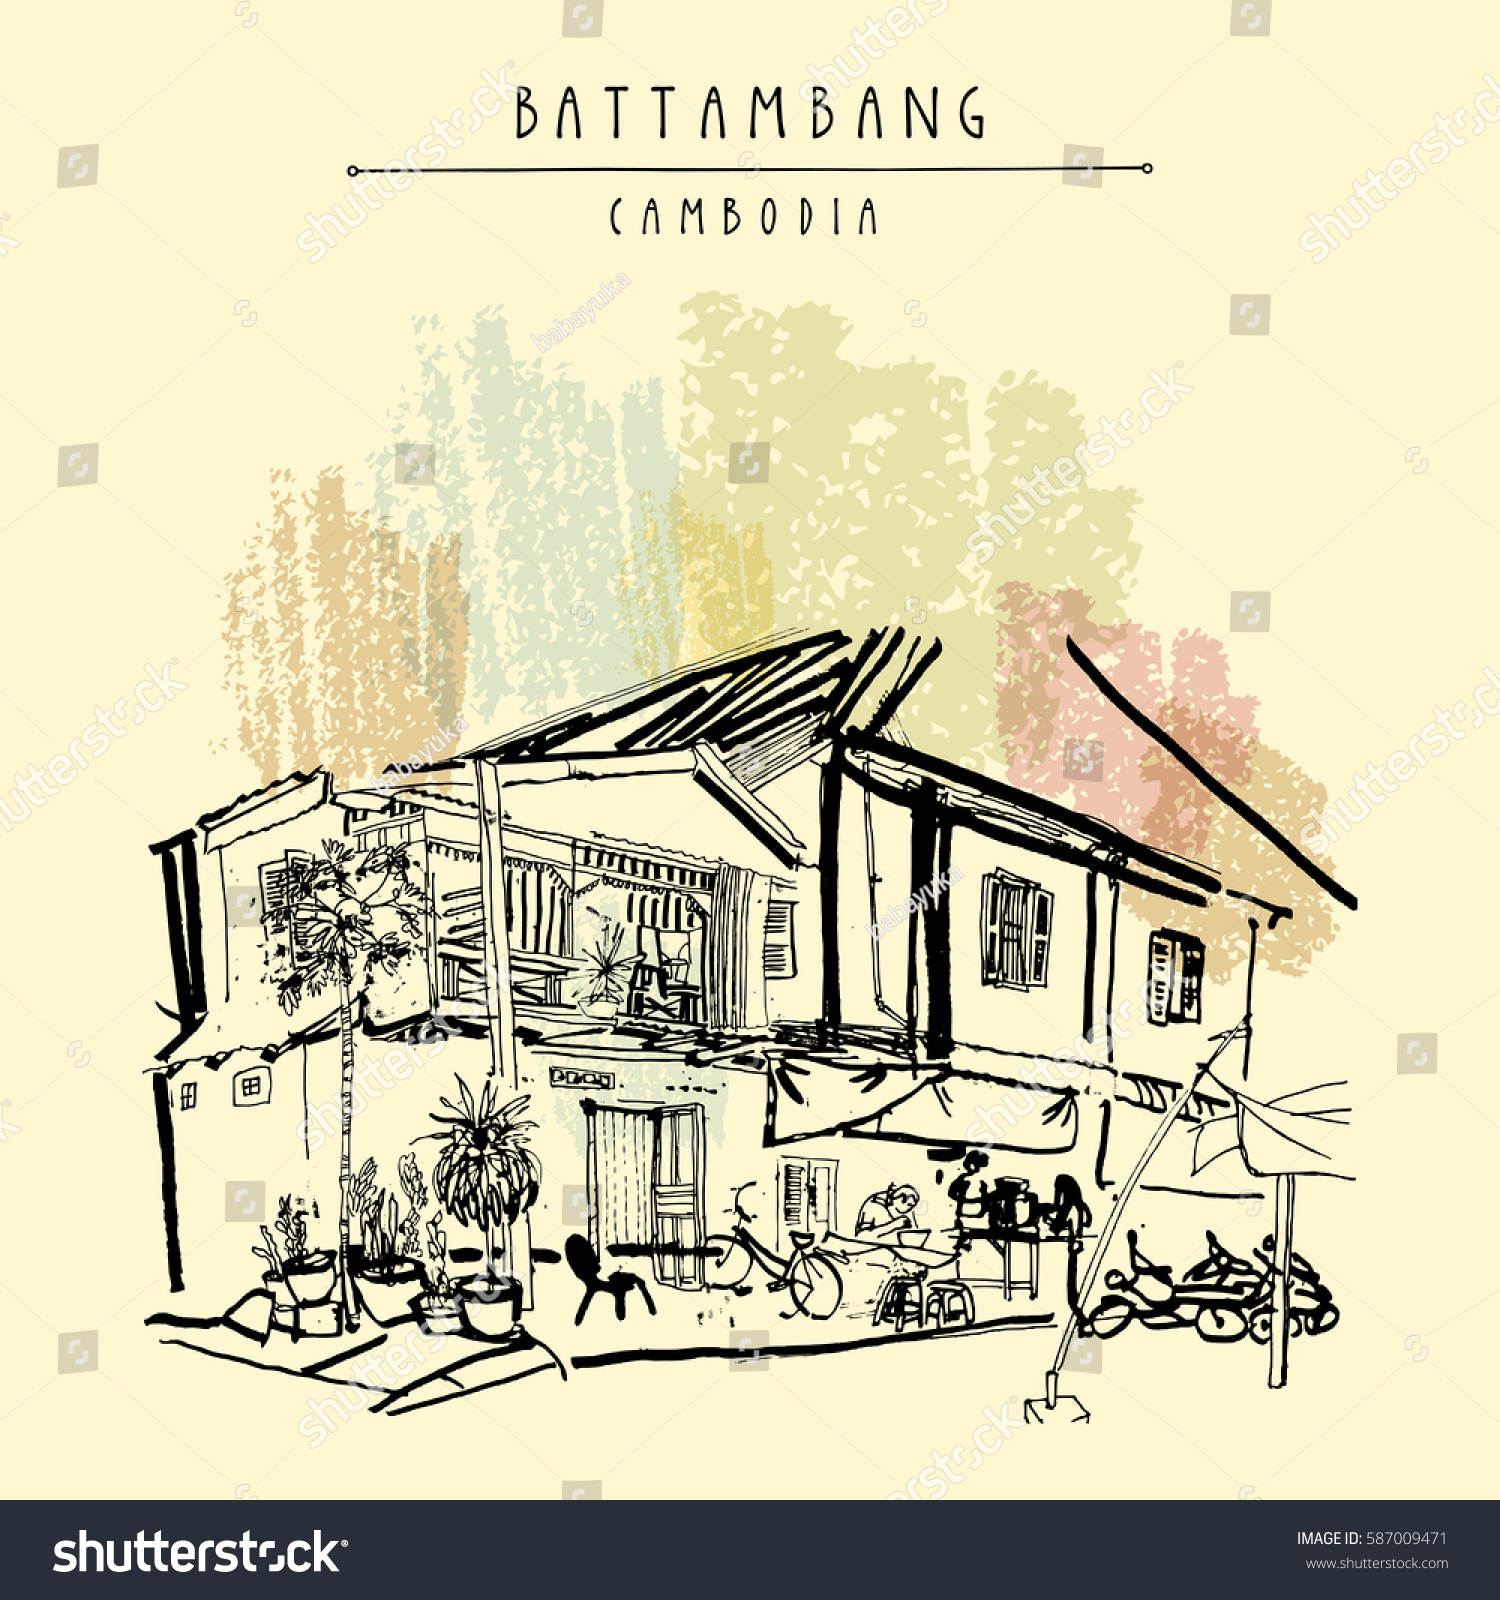 Battambang Cambodia Southeast Asia Residential House And Cafe In Old Town French